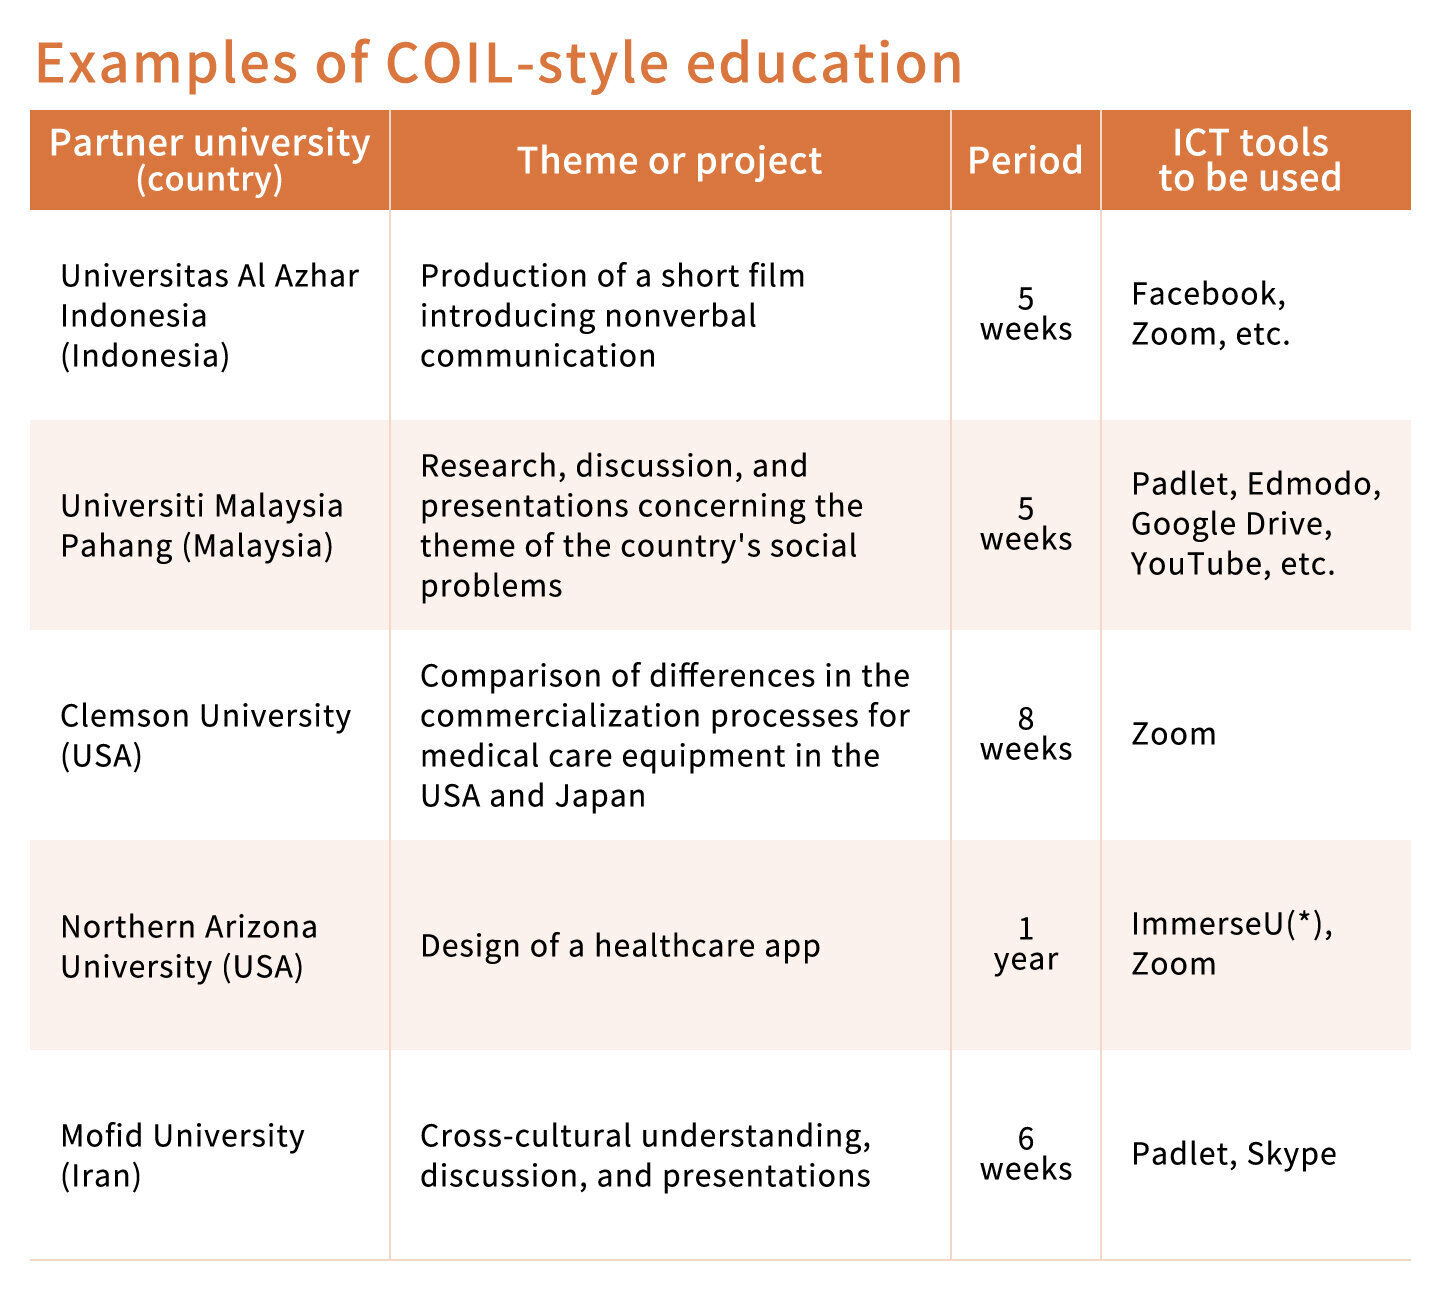 Examples of COIL-style education